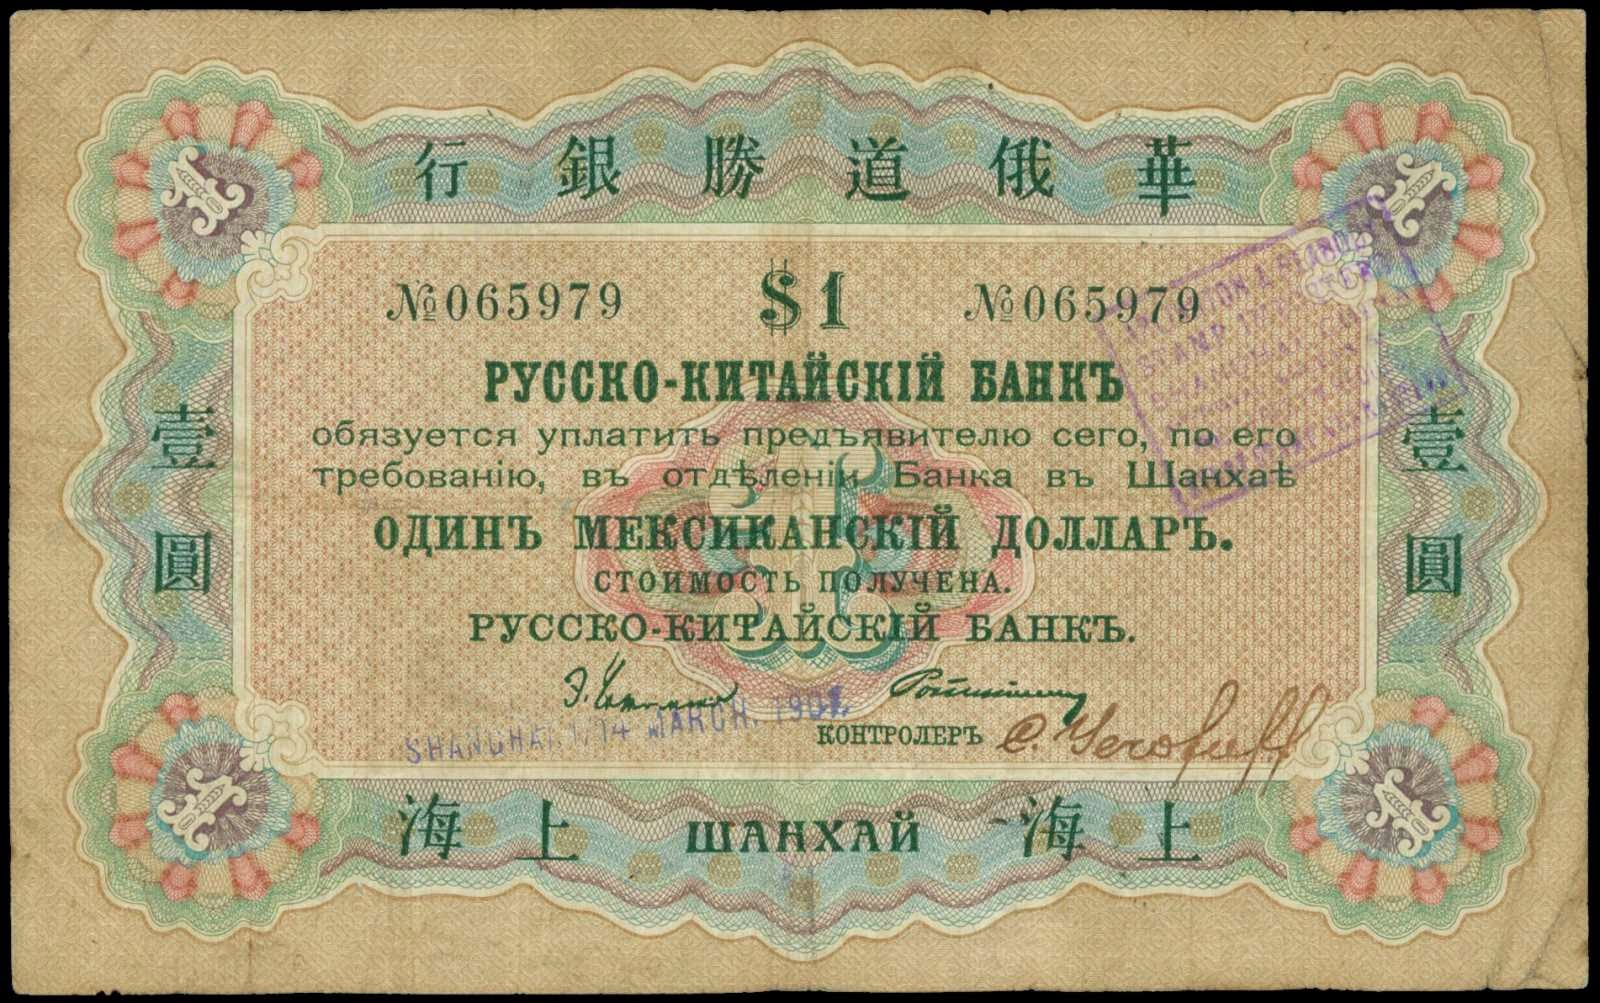 Mexican Dollar banknote 1901 Russo-Chinese Bank